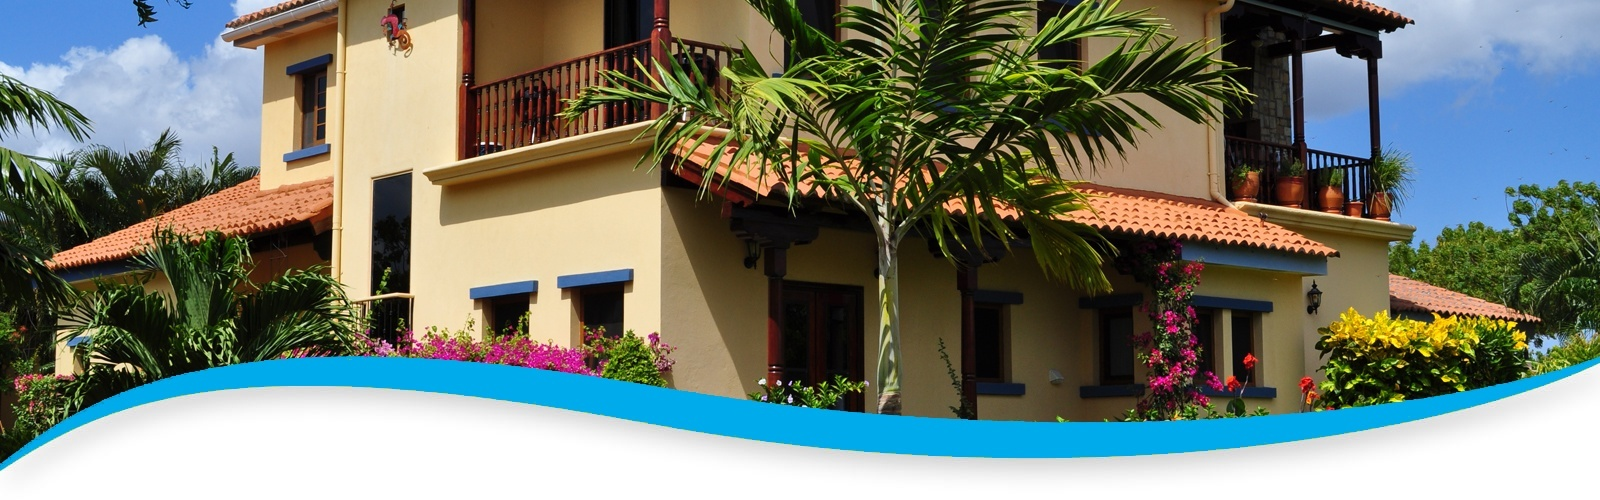 Finance Your Nicaragua Real Estate at Gran Pacifica